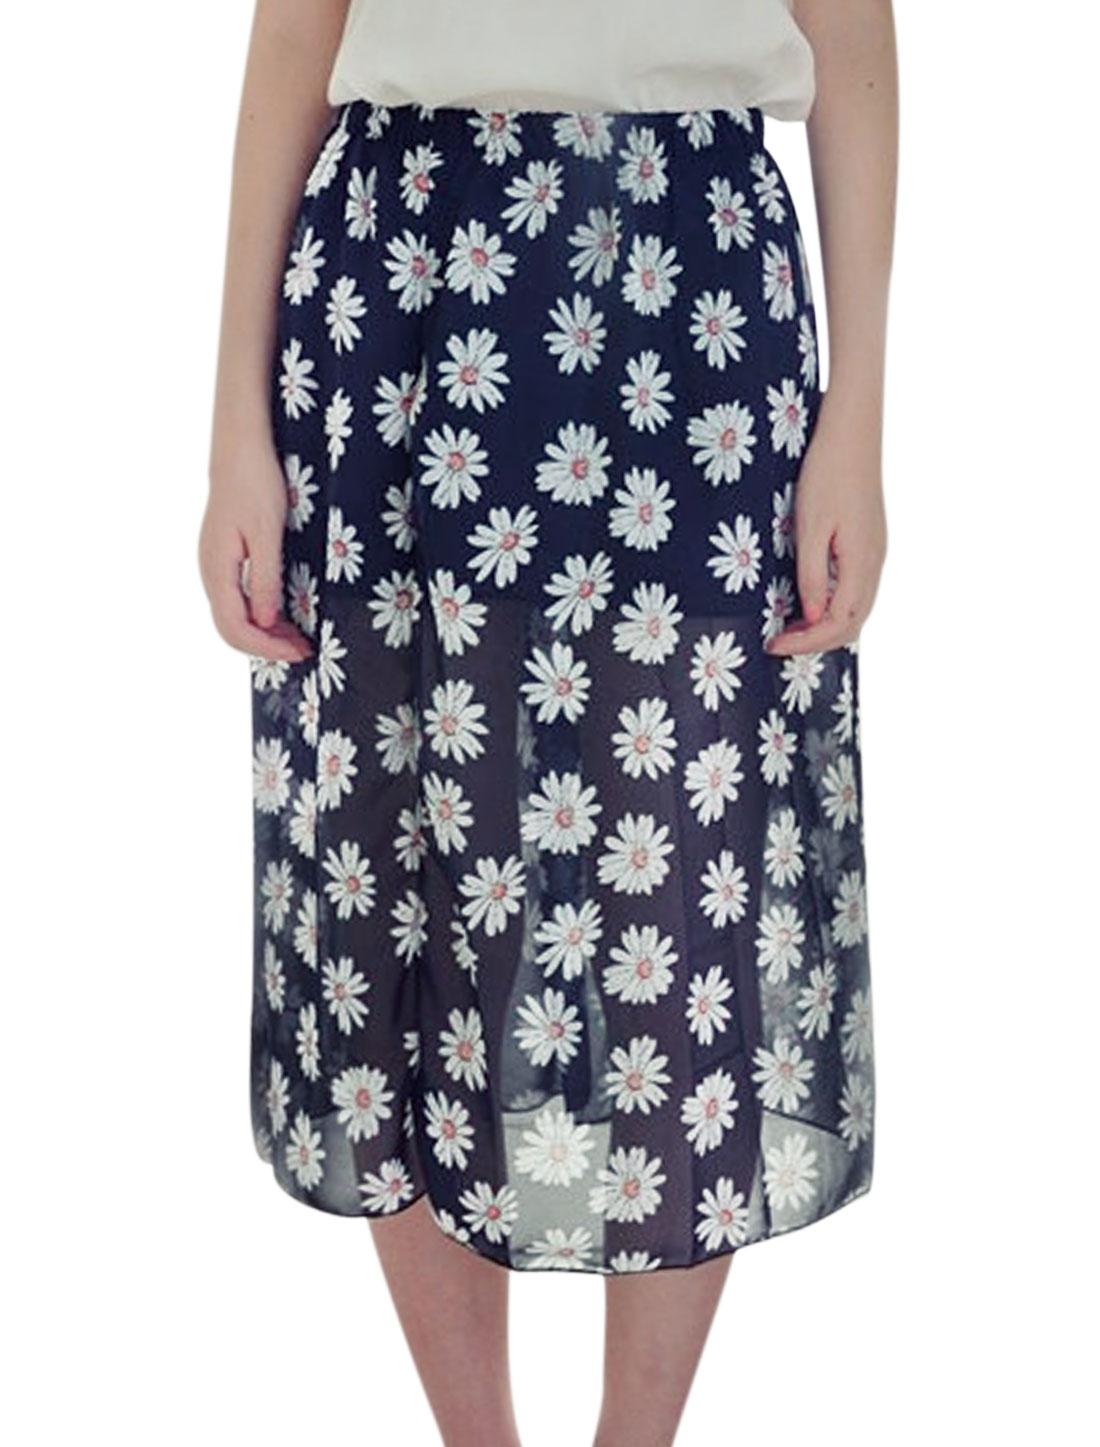 Lady Elastic Waist Floral Prints Half Lined Chiffon Skirt Navy Blue XS